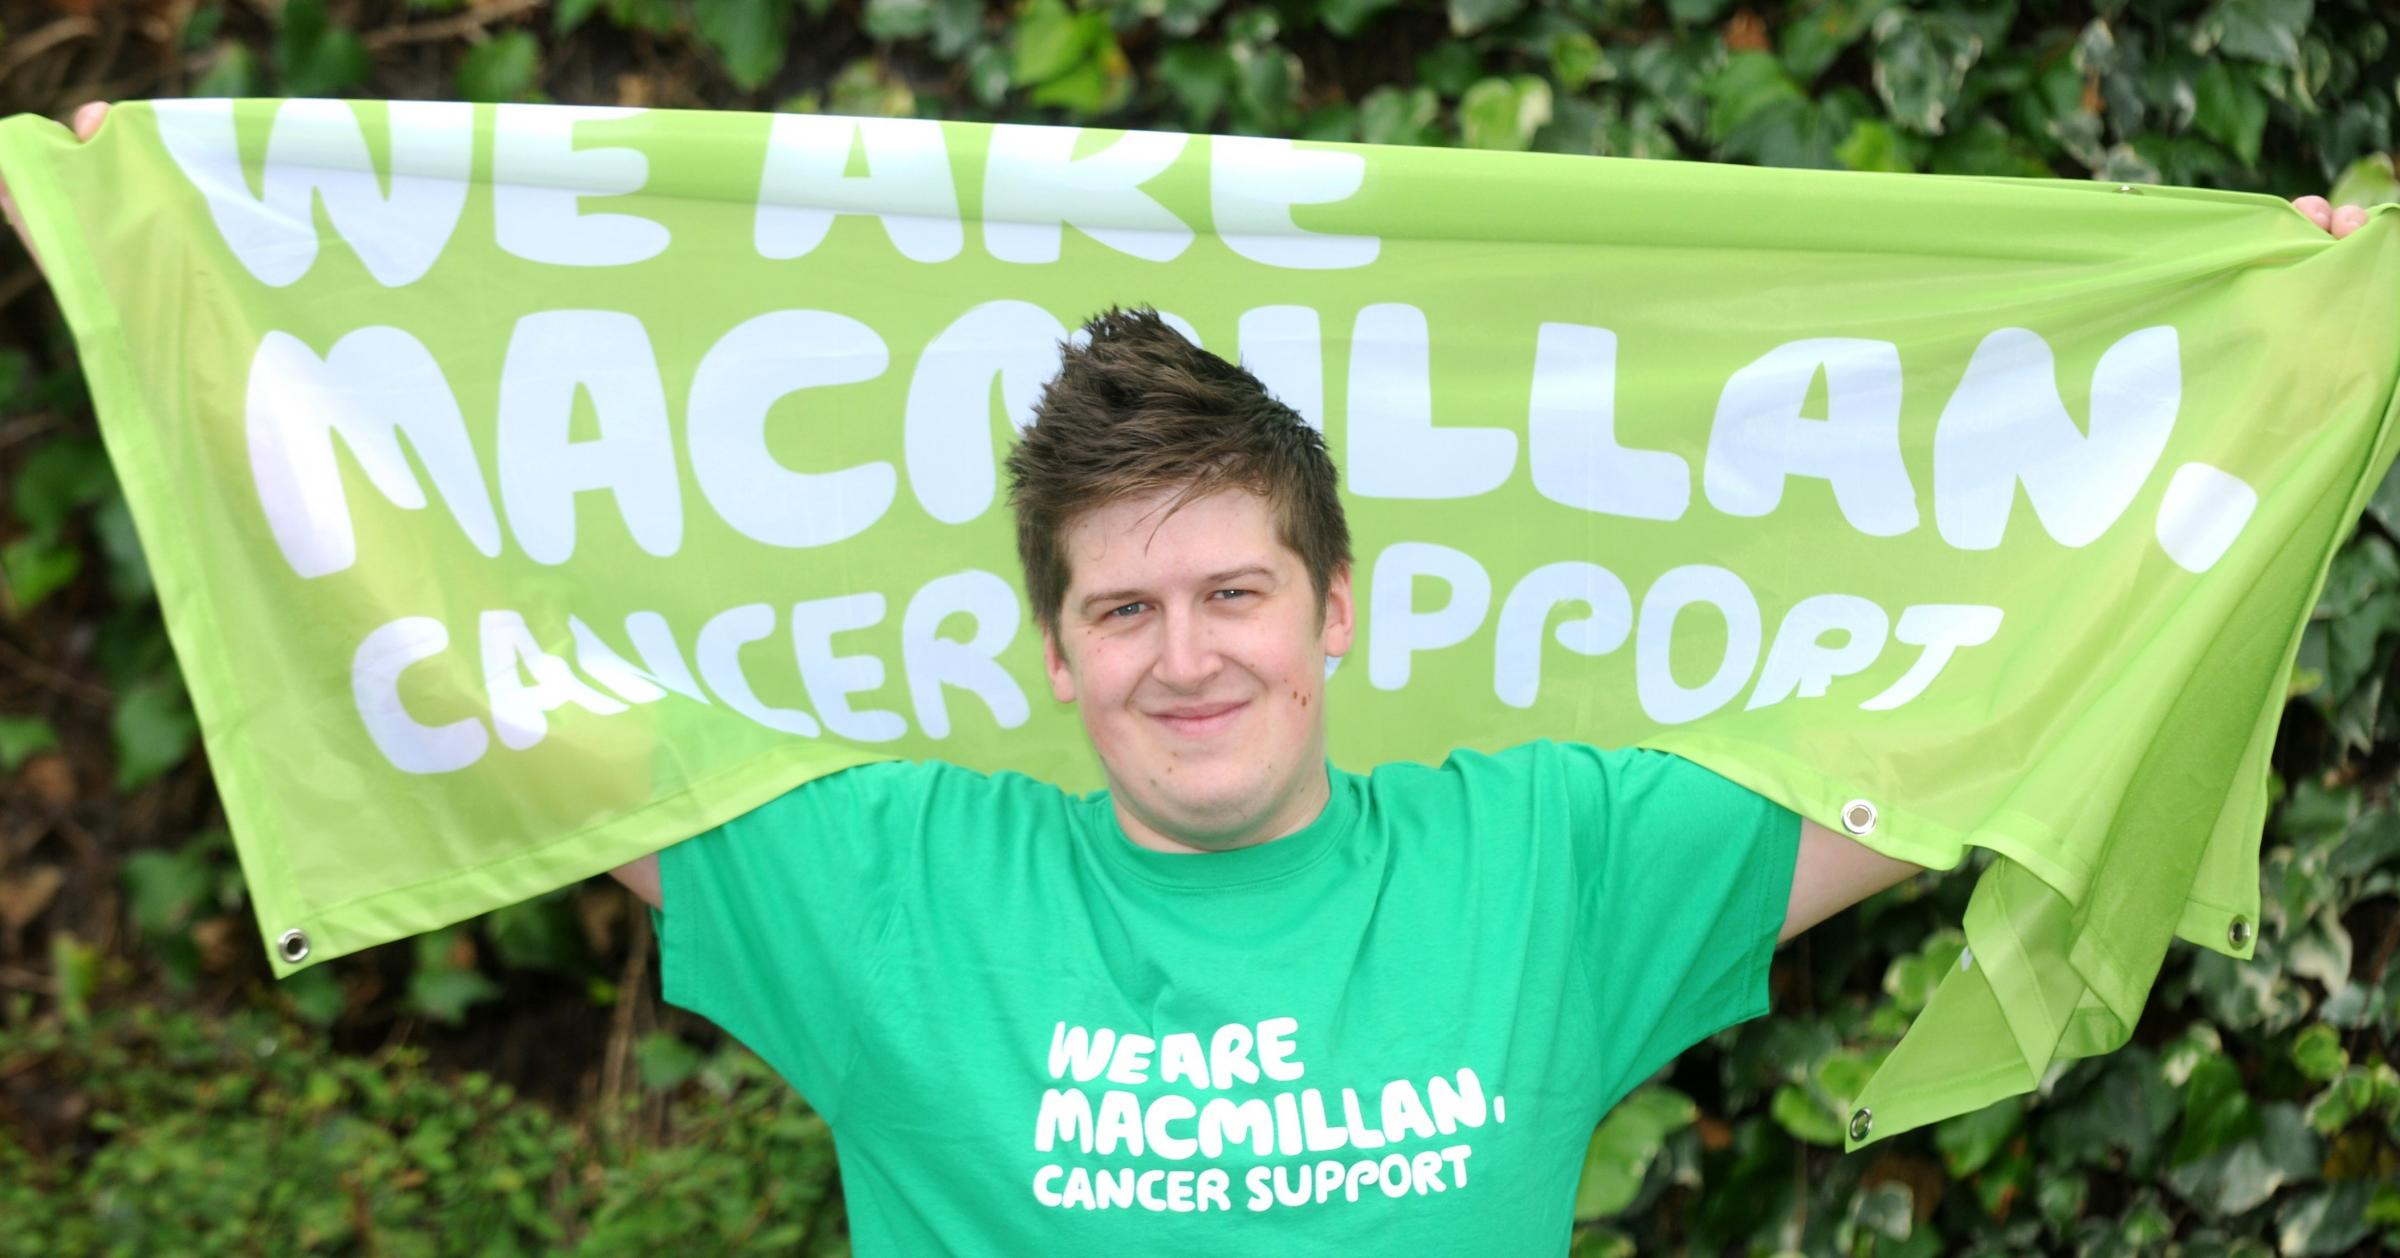 Matthew Ascough, who has received treatment for cancer and now aims to raise £10,000 for Macmillan